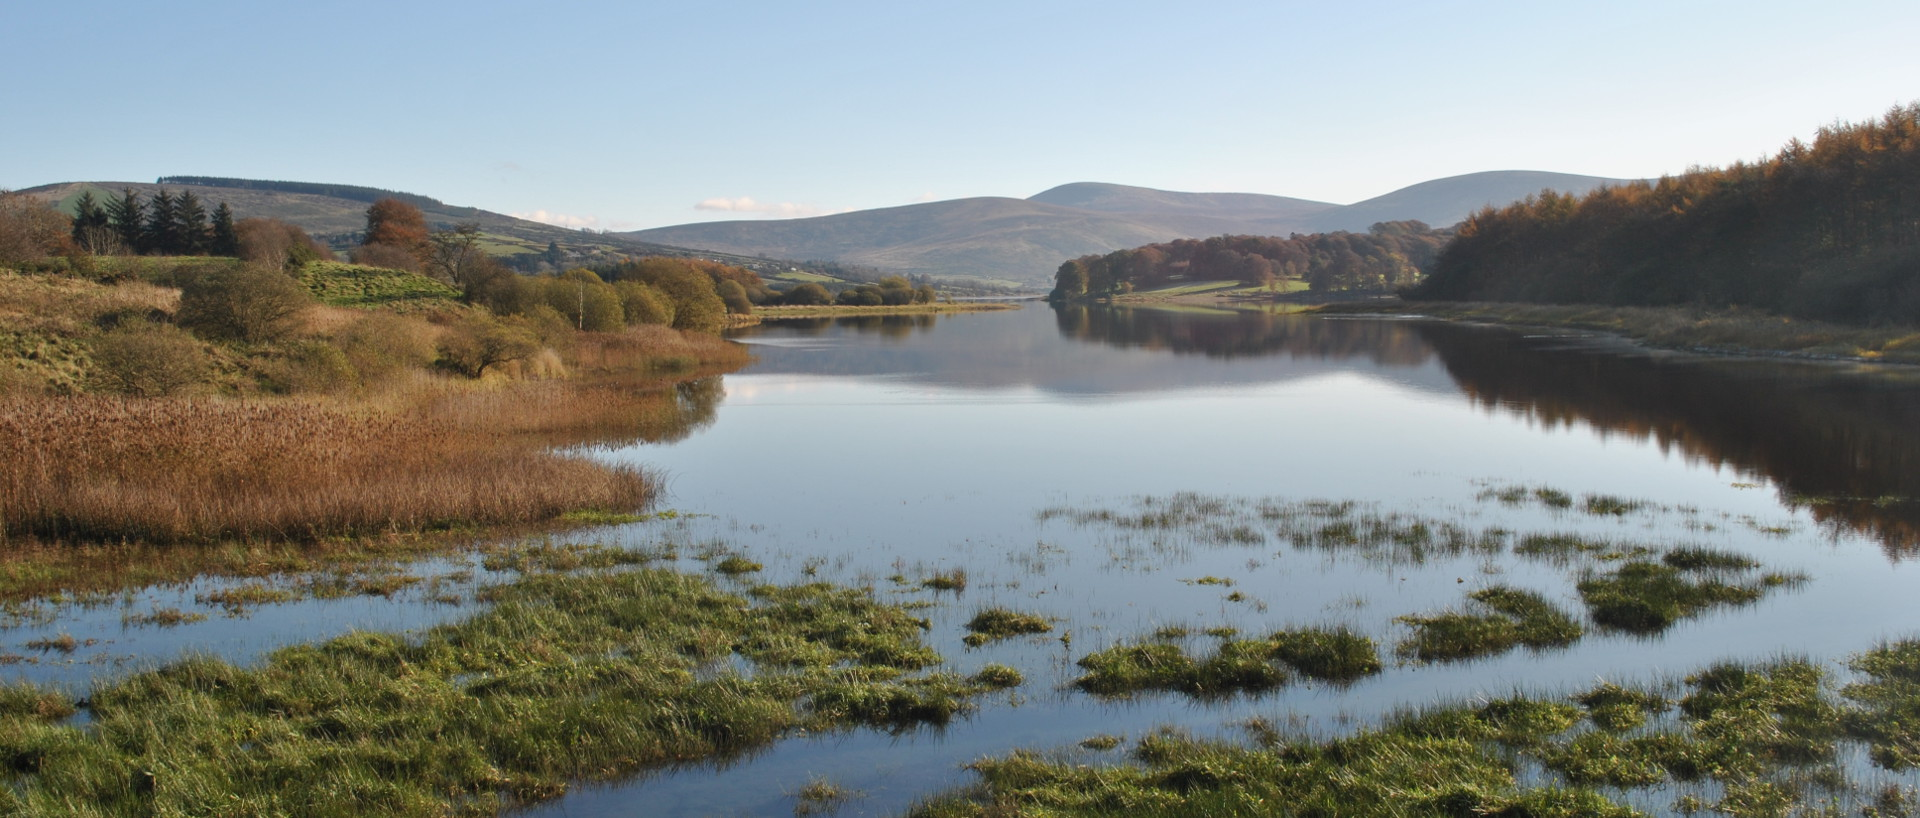 Blessington lakes County Wicklow